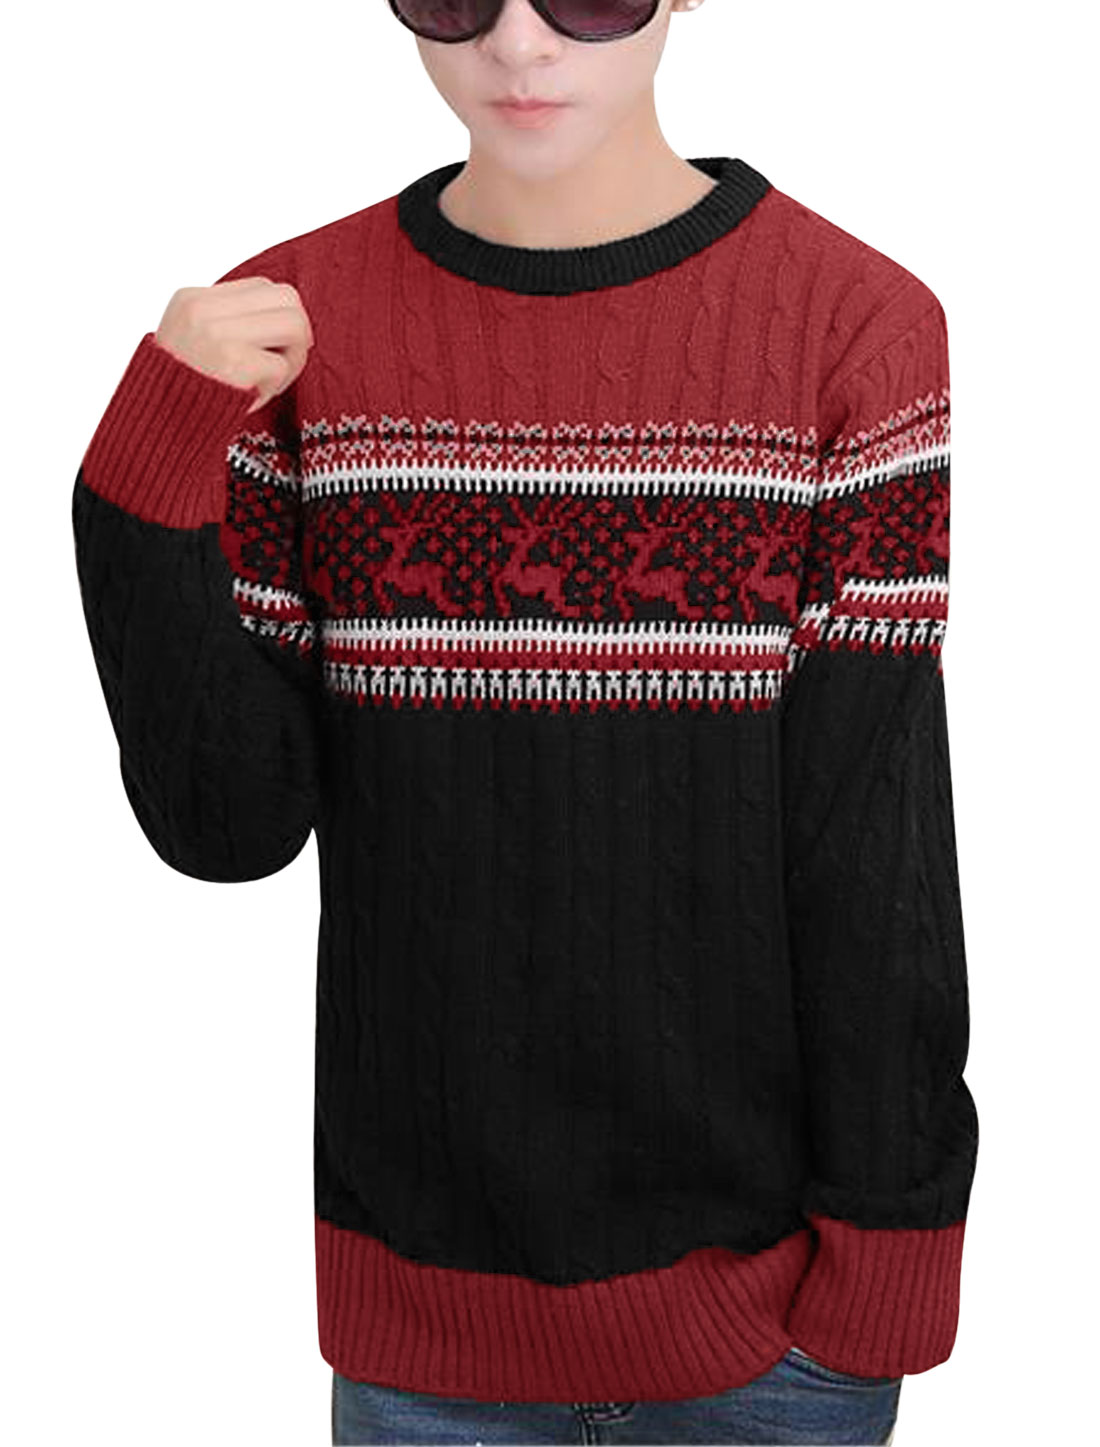 Men Cable Rib Knit Design Contrast Color Deer Print Leisure Sweater Black S